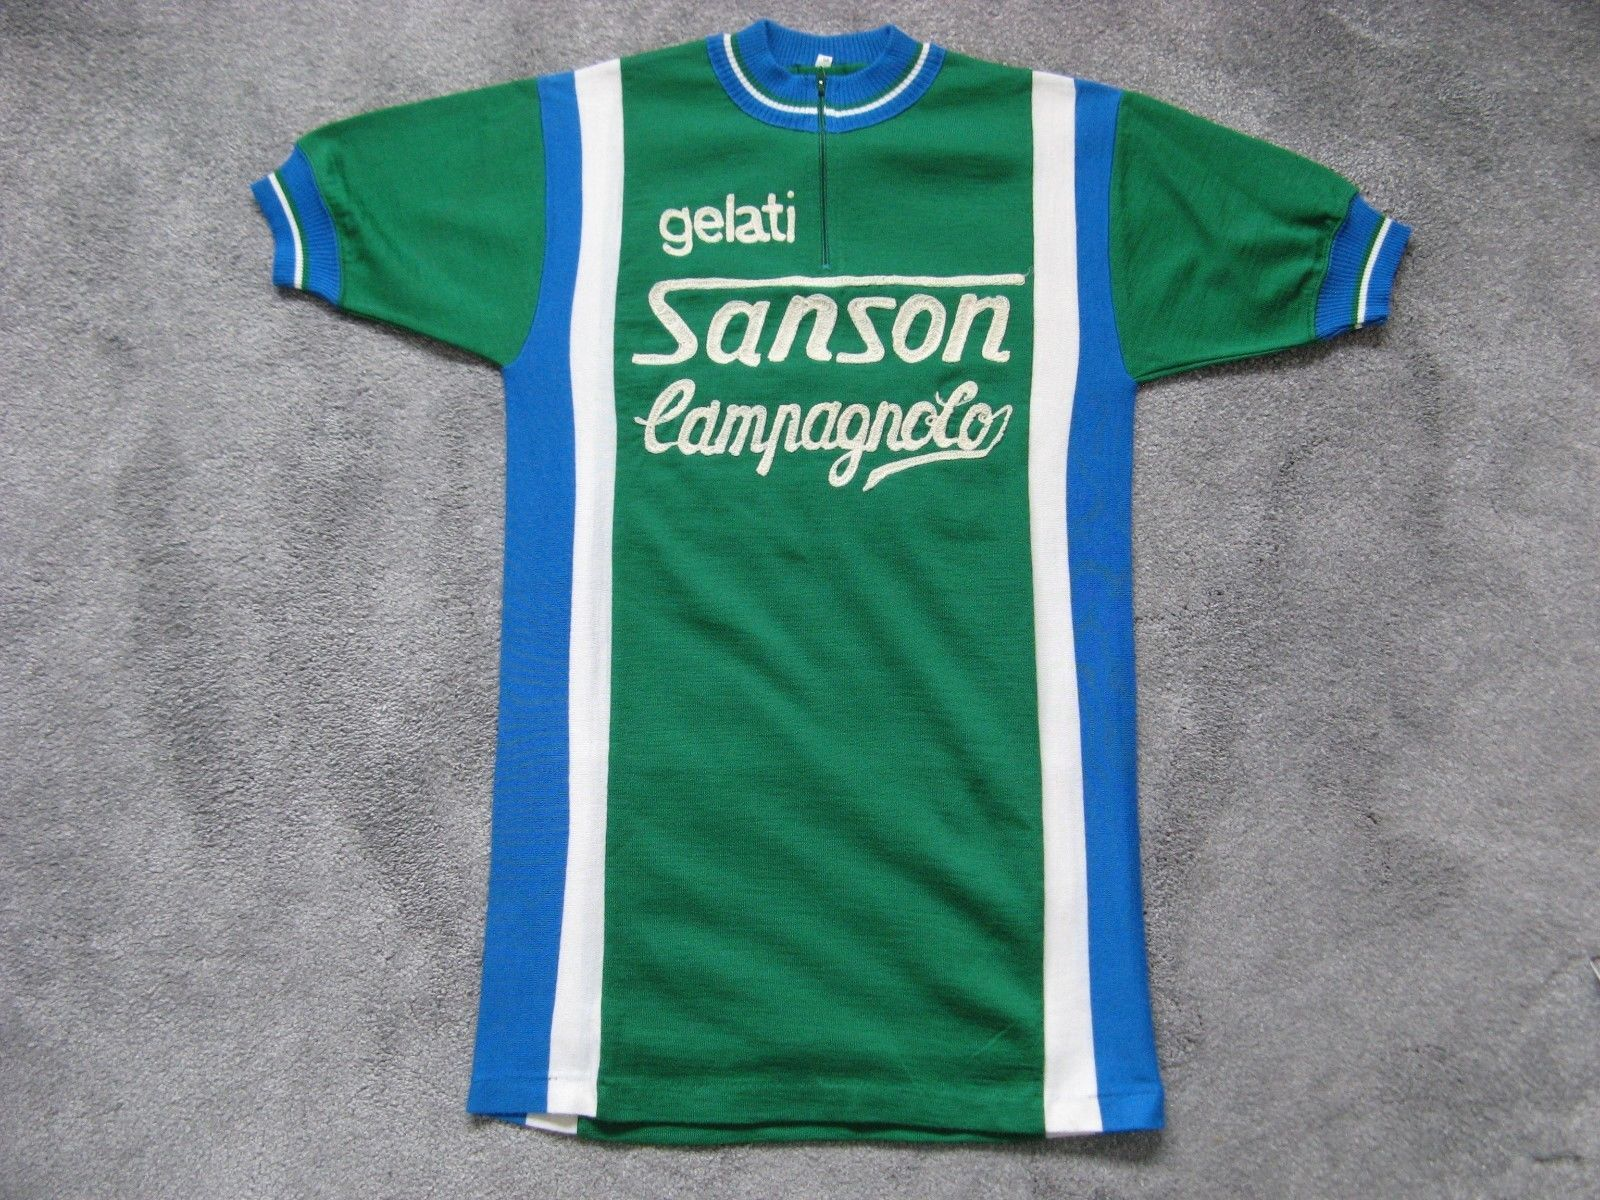 GELATI SANSON CAMPAGNOLO VINTAGE CYCLING JERSEY MAILLOT MOSER MAGLIA  L`EROICA  13eea8a76